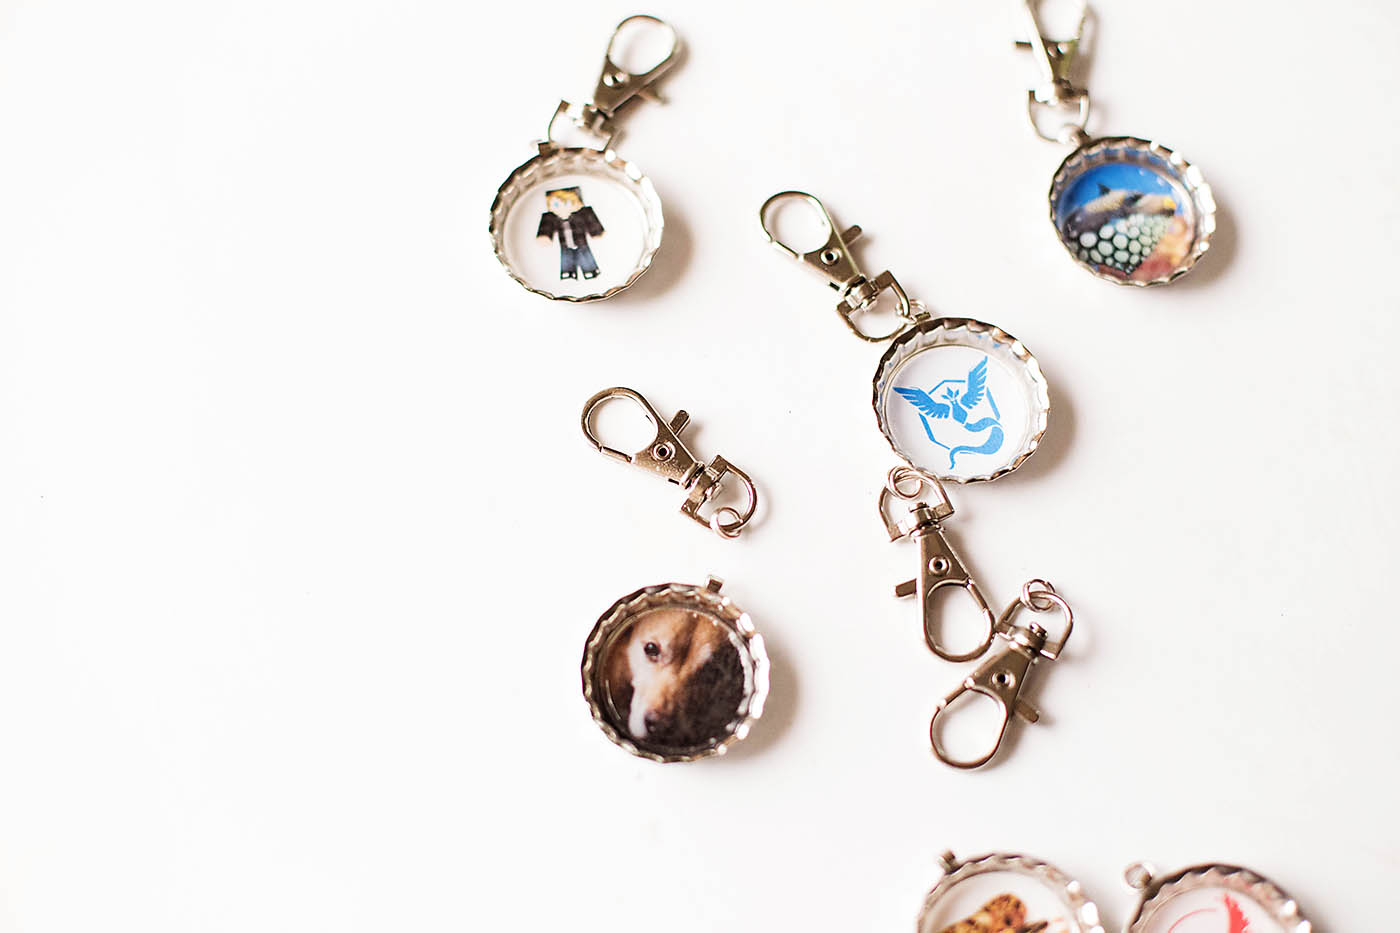 Cool Keychain Craft Ideas